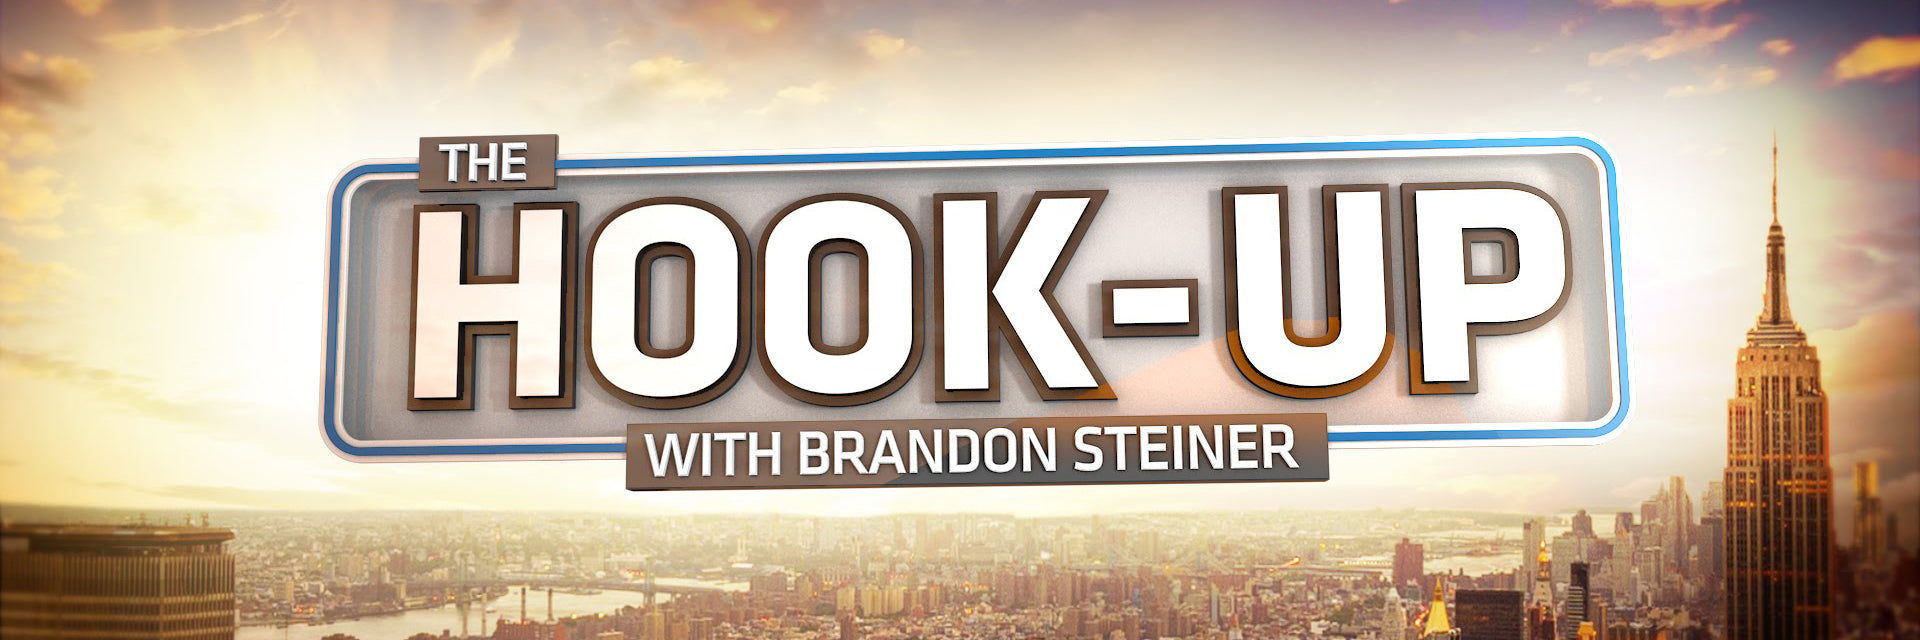 The Hook-Up with Brandon Steiner